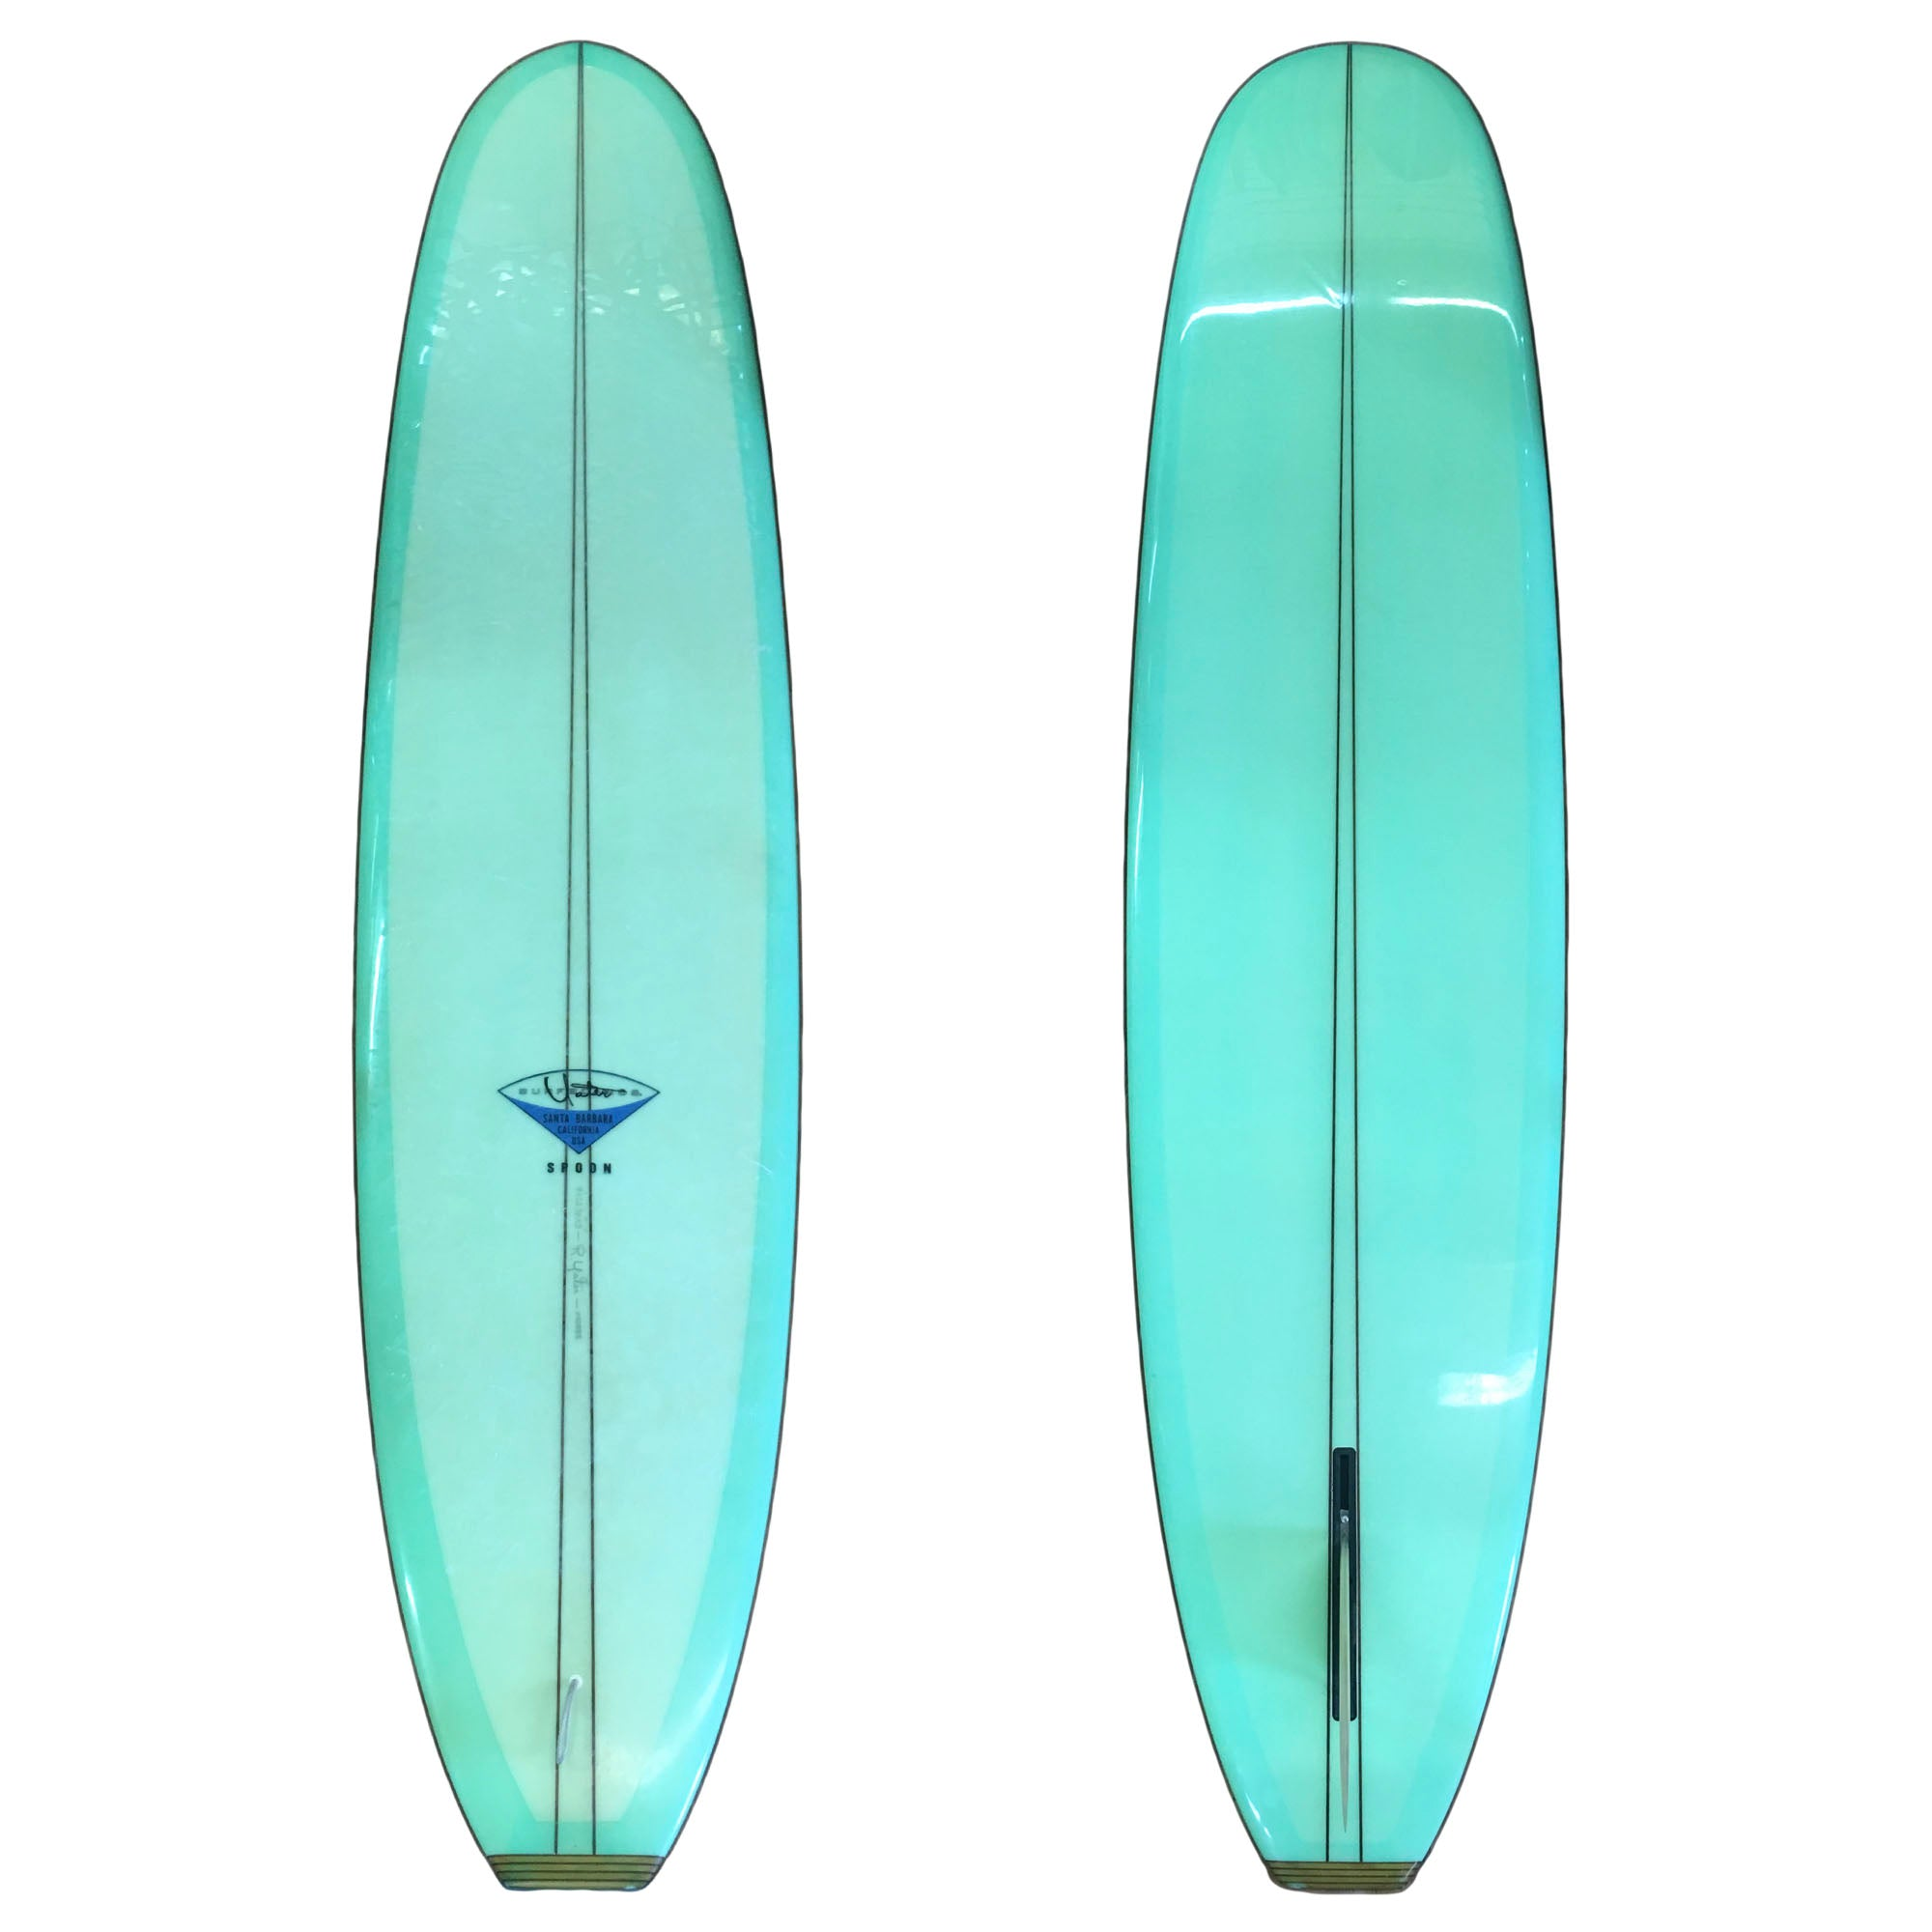 Yater Spoon 9'0 Used Surfboard